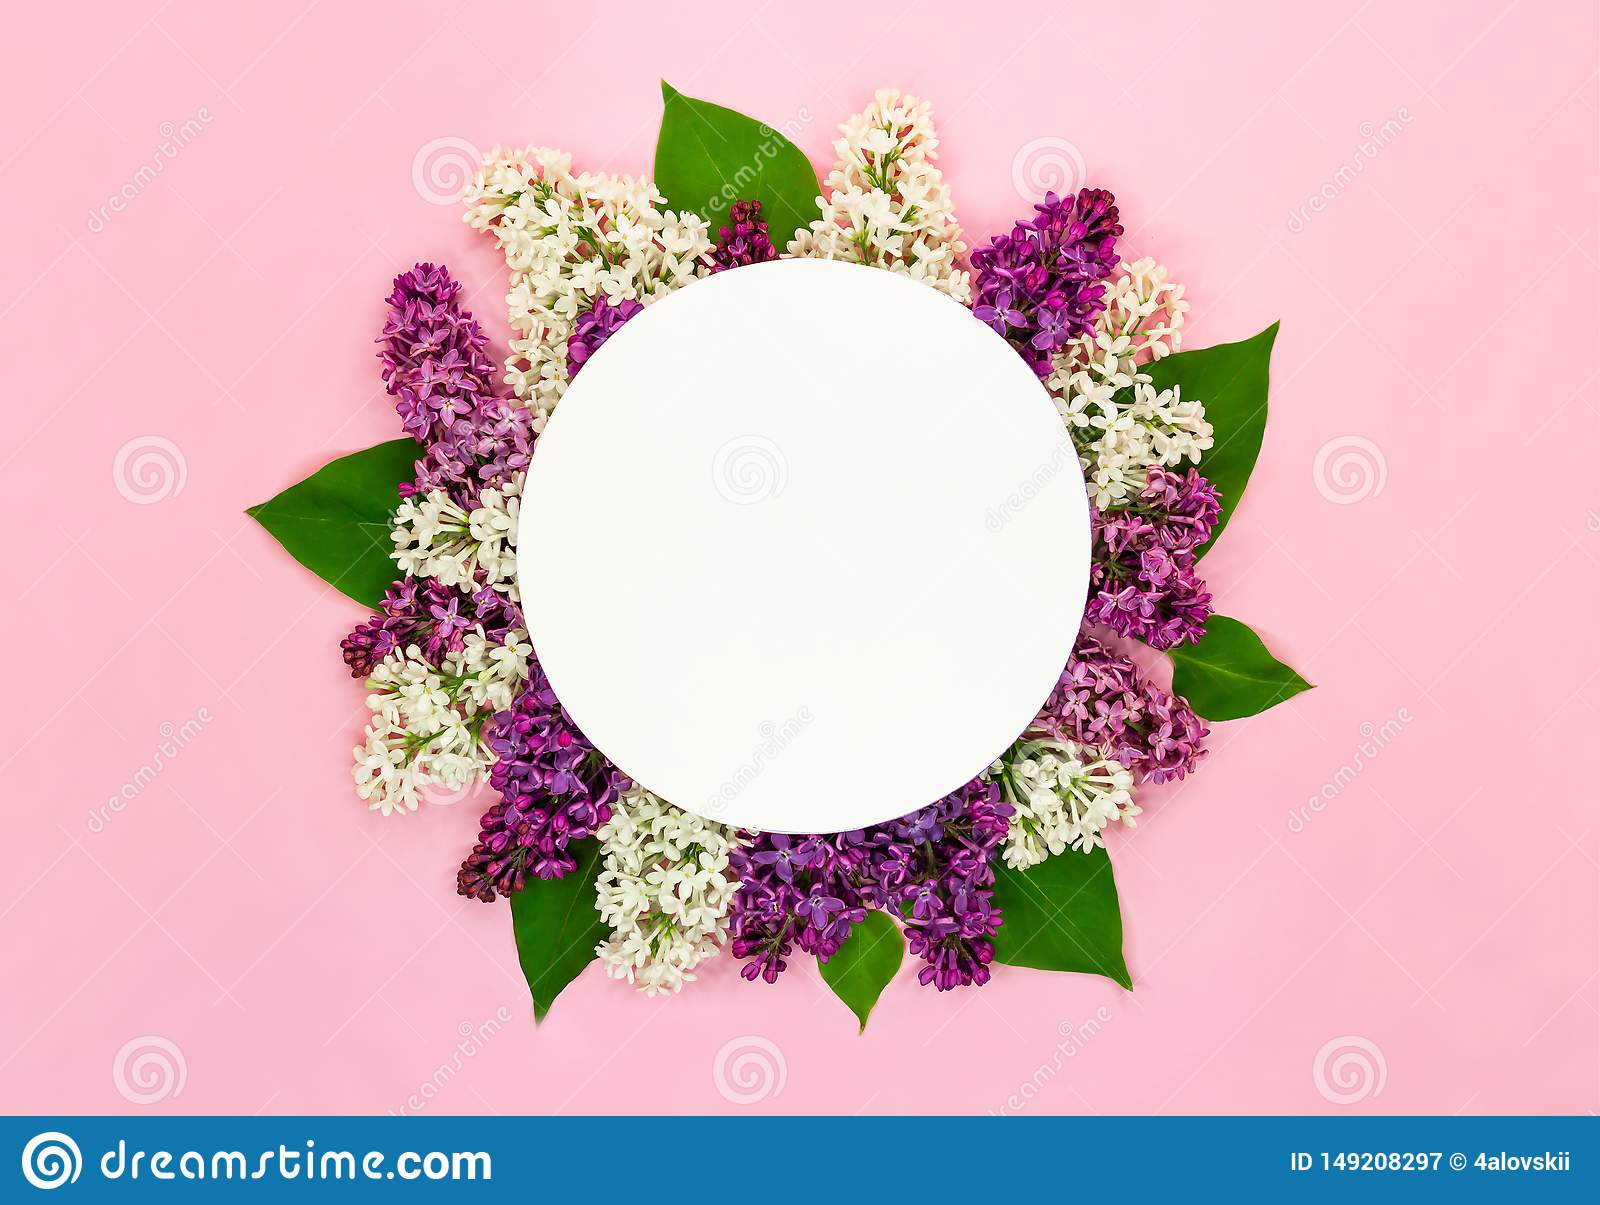 Beautiful lilac flowers and round blank card on light pink background. Syringa blossoms. Romantic summer greeting card